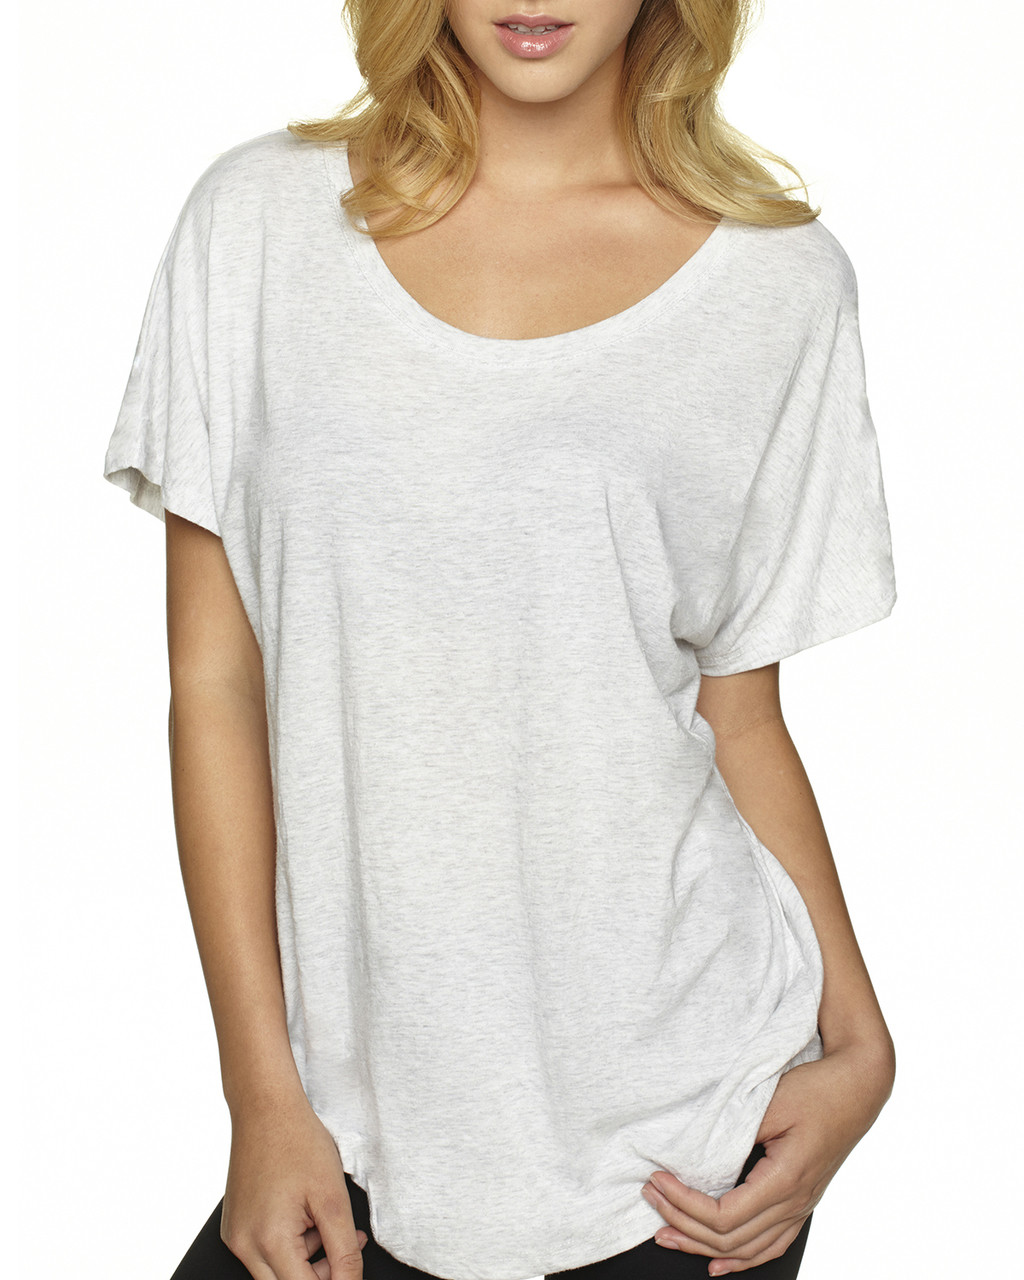 Heather White -  6760 Next Level Ladies' Triblend Dolman Shirt | BlankClothing.ca